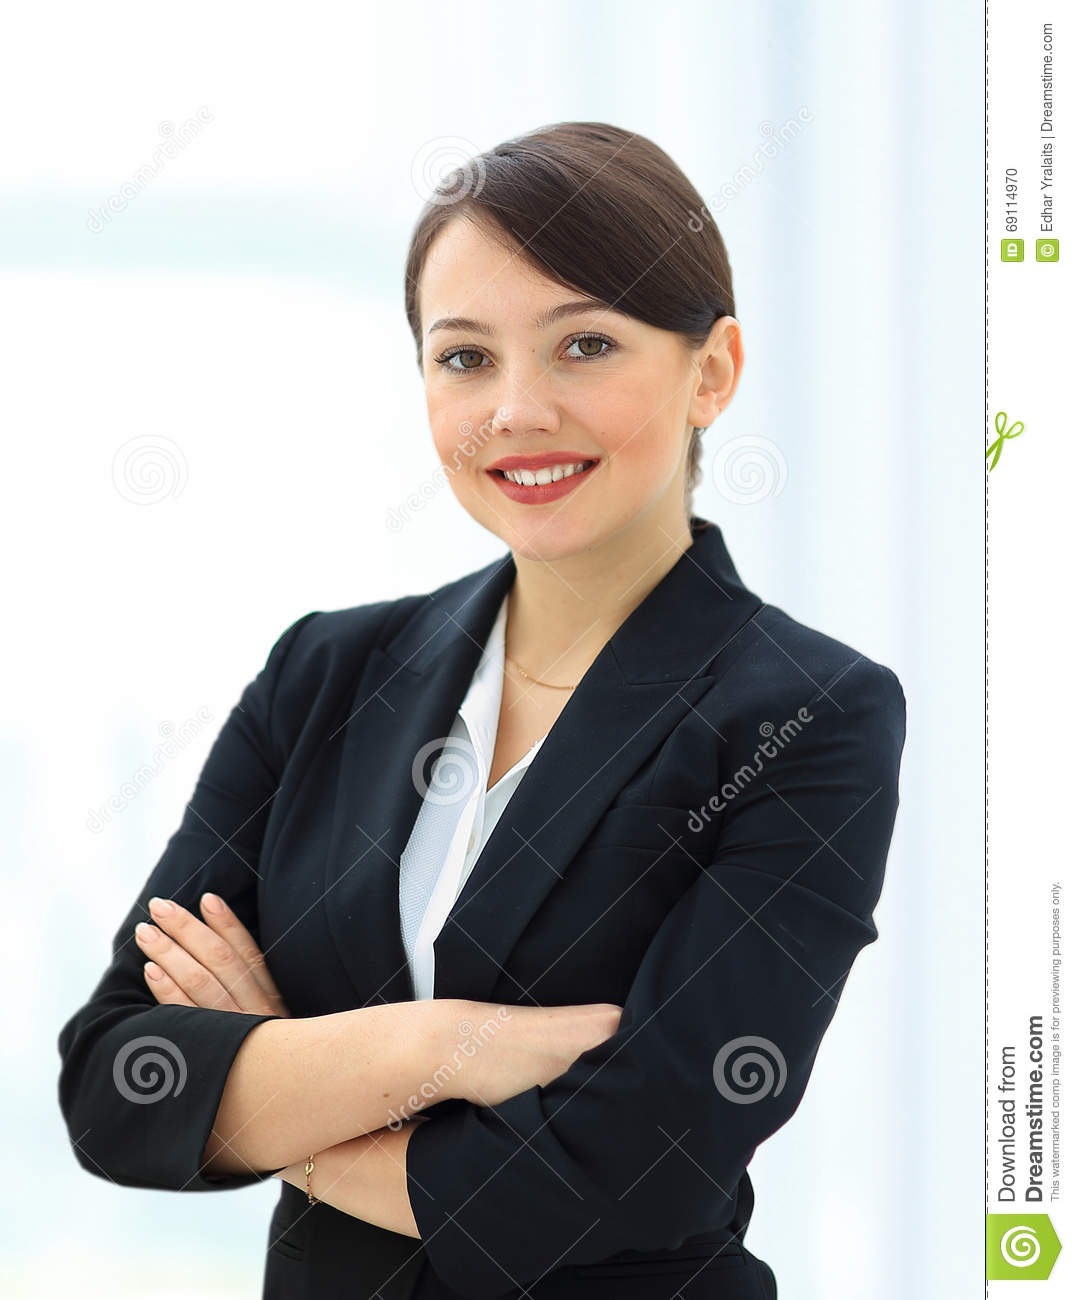 Positive business woman smiling over white